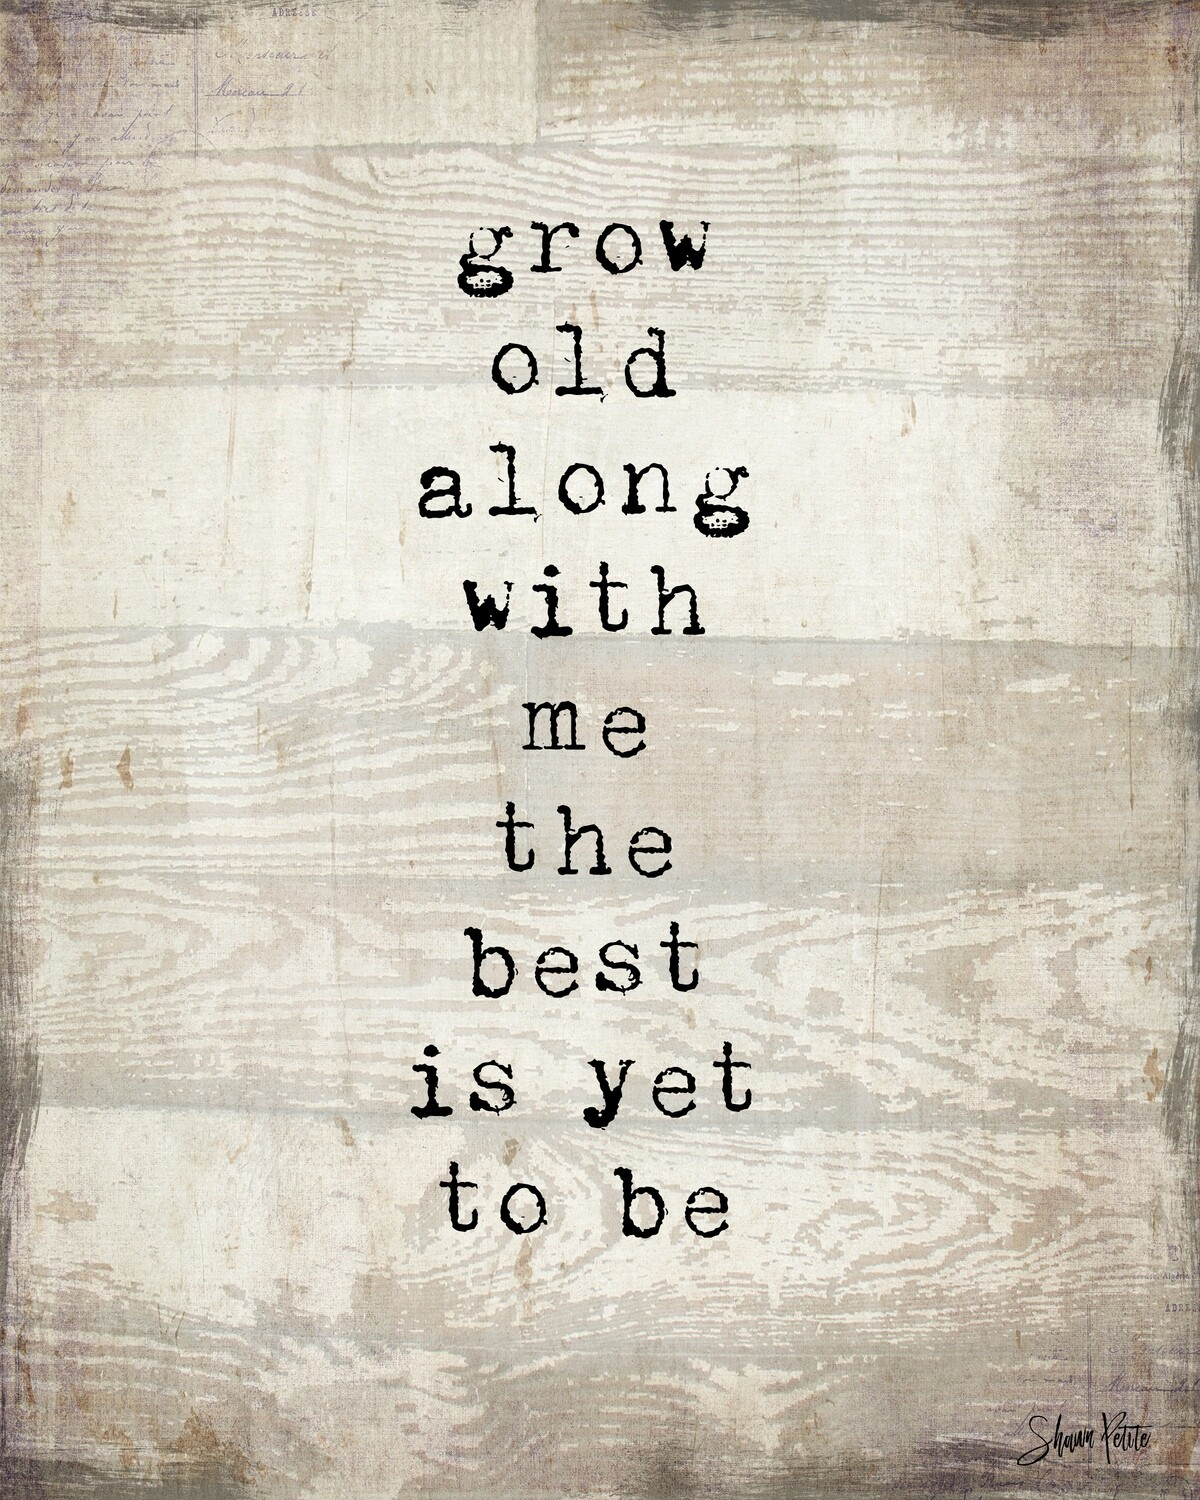 """""""Grow old along with me the best is yet to be"""" Print on Wood 11x14 Overstock"""